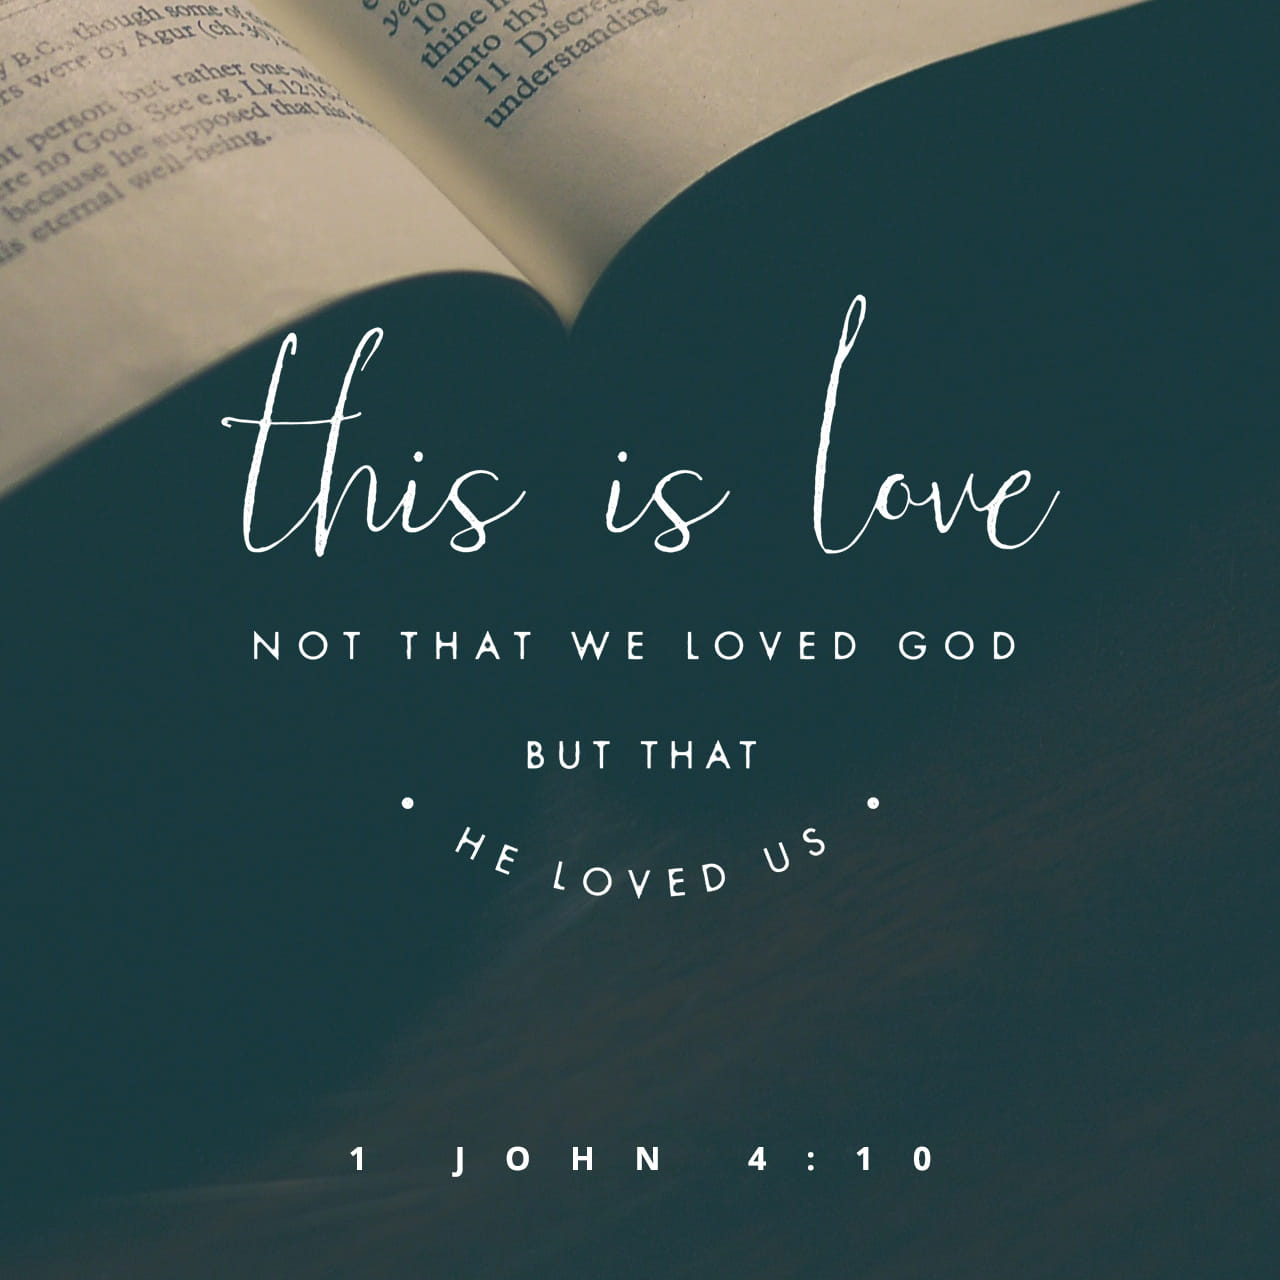 1 John 4:10 Herein is love, not that we loved God, but that he loved us, and sent his Son to be the propitiation for our sins. | King James Version (KJV)